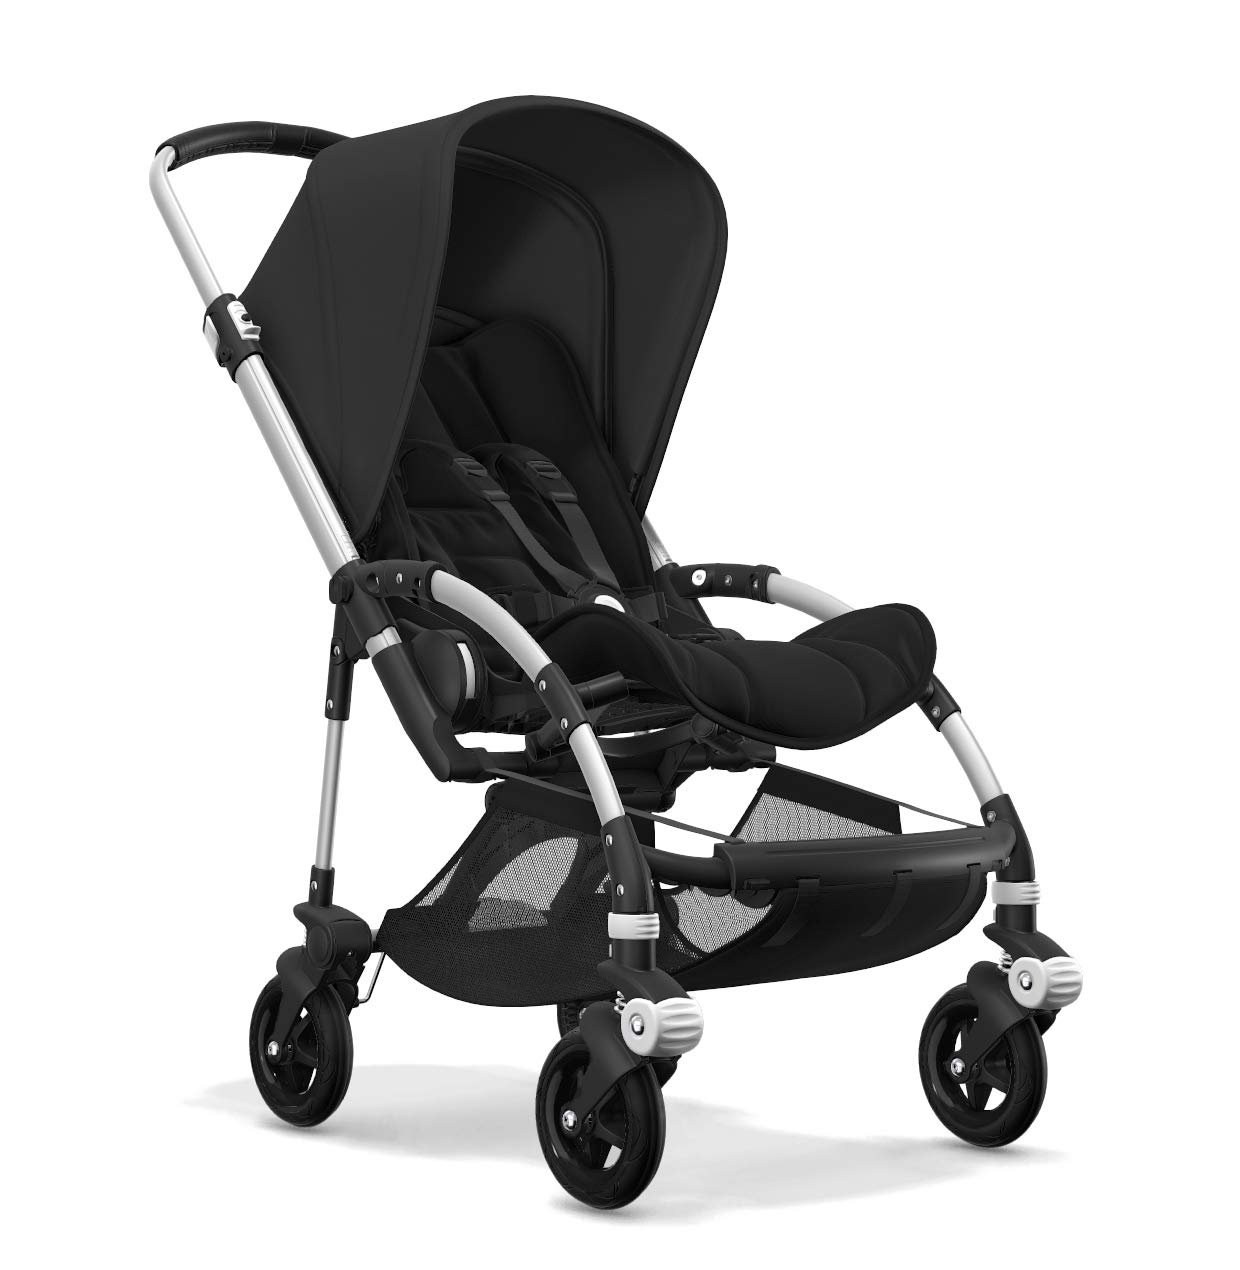 Bugaboo Bee 5, Foldable and Lightweight Pushchair, Converts Into Pram, Black Bugaboo The perfect choice for city living Compact yet comfortable for parent and baby Light and easy one-piece fold for small spaces 2